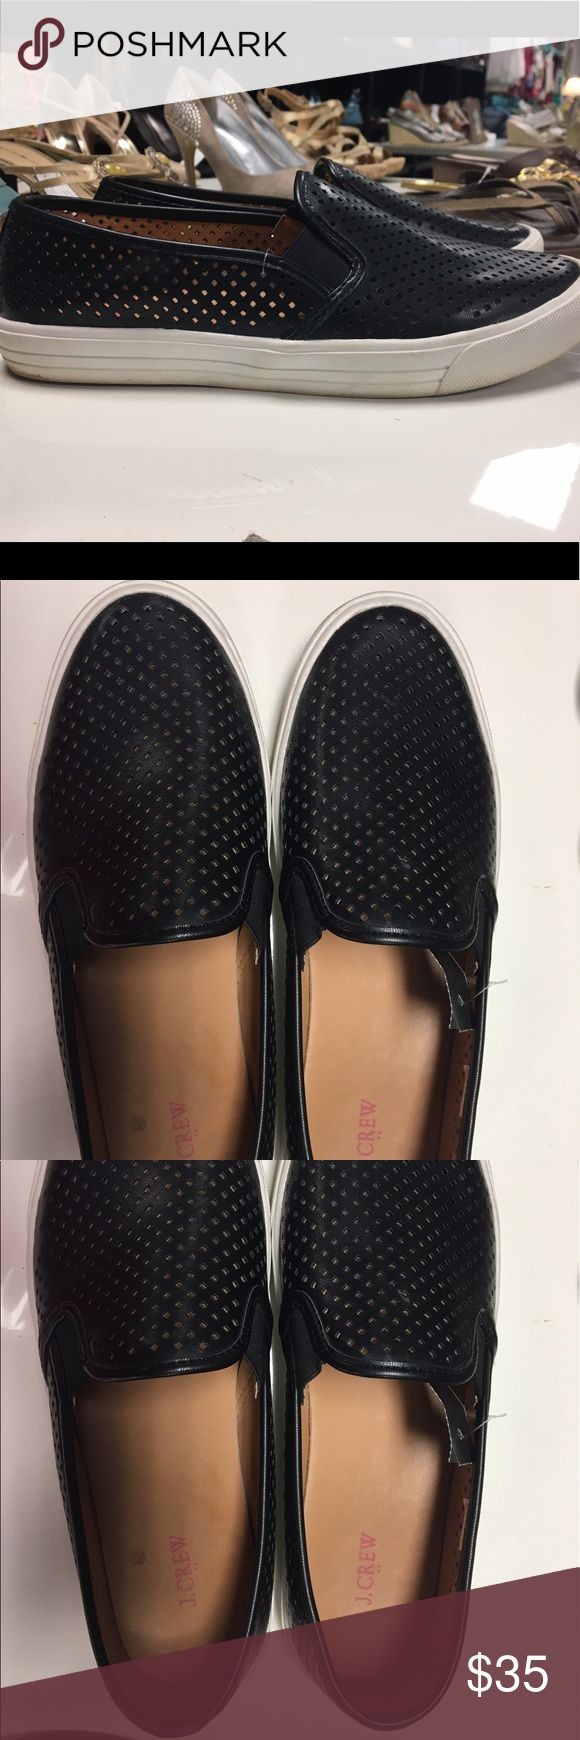 J crew Shoes J crew flat shoes. Previously loved J. Crew Shoes Flats & Loafers